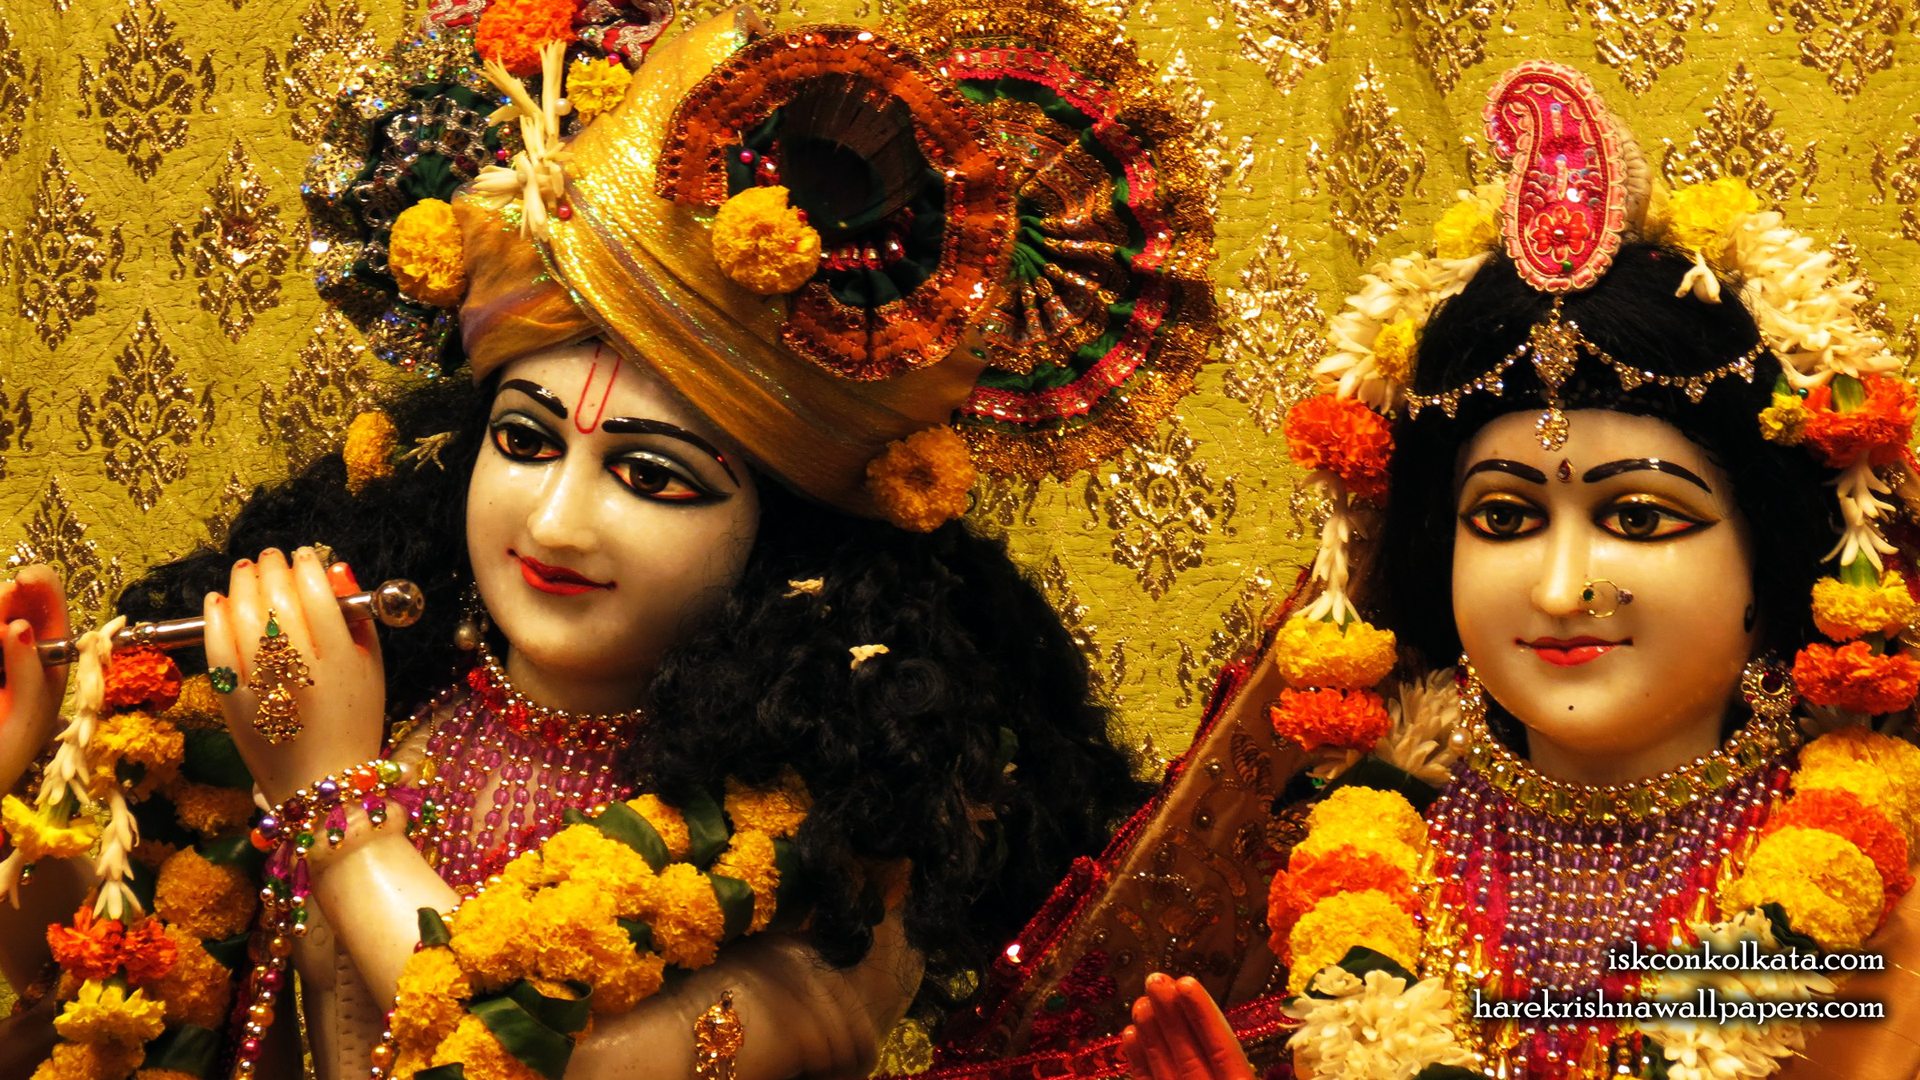 Sri Sri Radha Govinda Close up Wallpaper (004) Size 1920x1080 Download